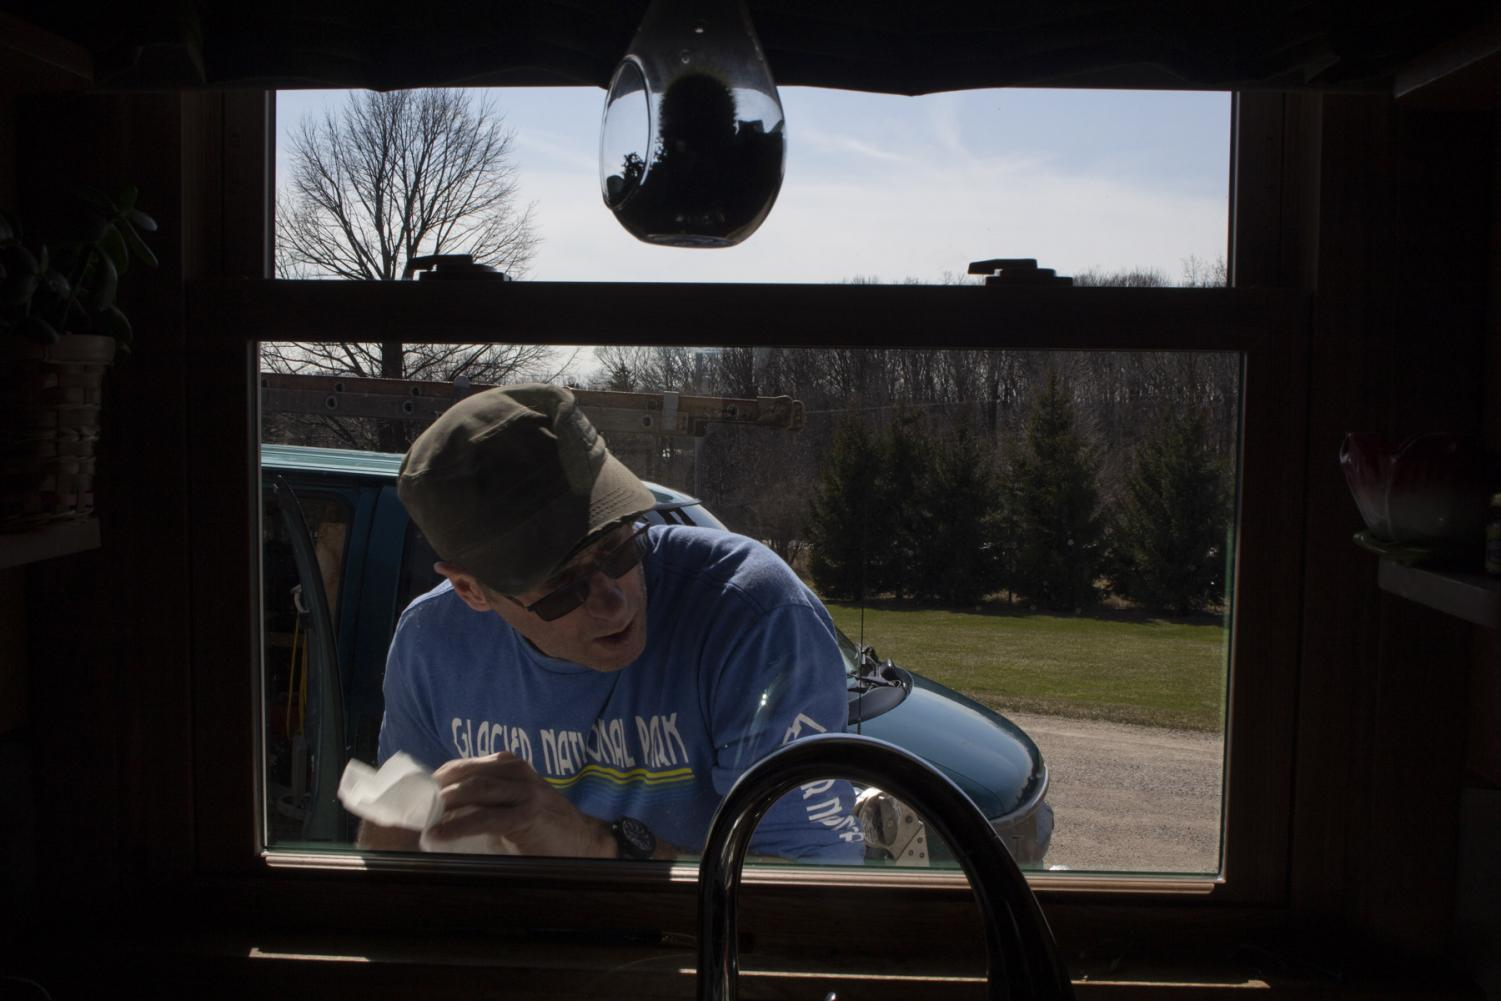 Mitch Schrage wipes the sawdust off a new screen he installed on his house on April 2, 2020, at his home in New Holstein, Wis. Schrage is used to work picking up this time of year, and with the shelter in place order in act, his business has not been affected at all, if anything has increased.